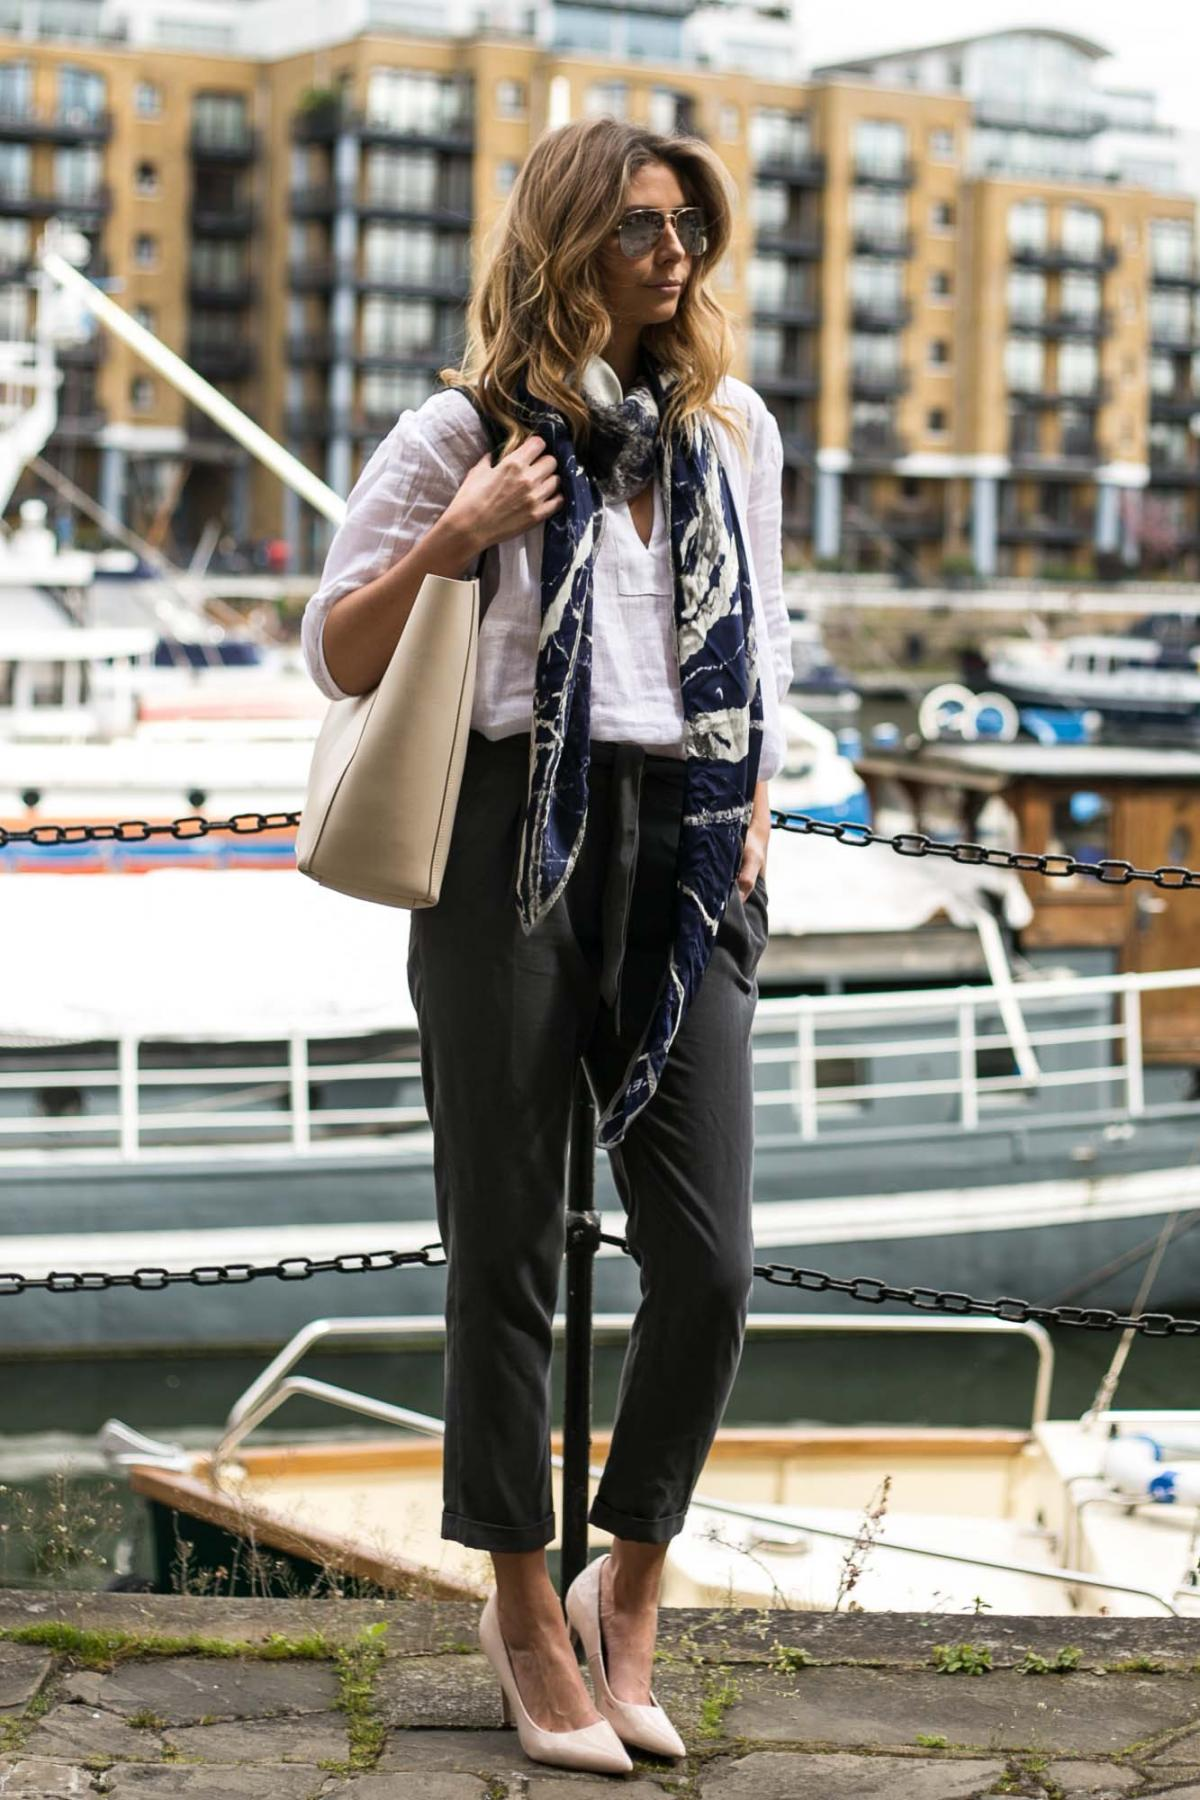 Jaeger white linen shirt, blue print silk scarf, cream lether tote bag, grey peg leg trousers, nude court shoes